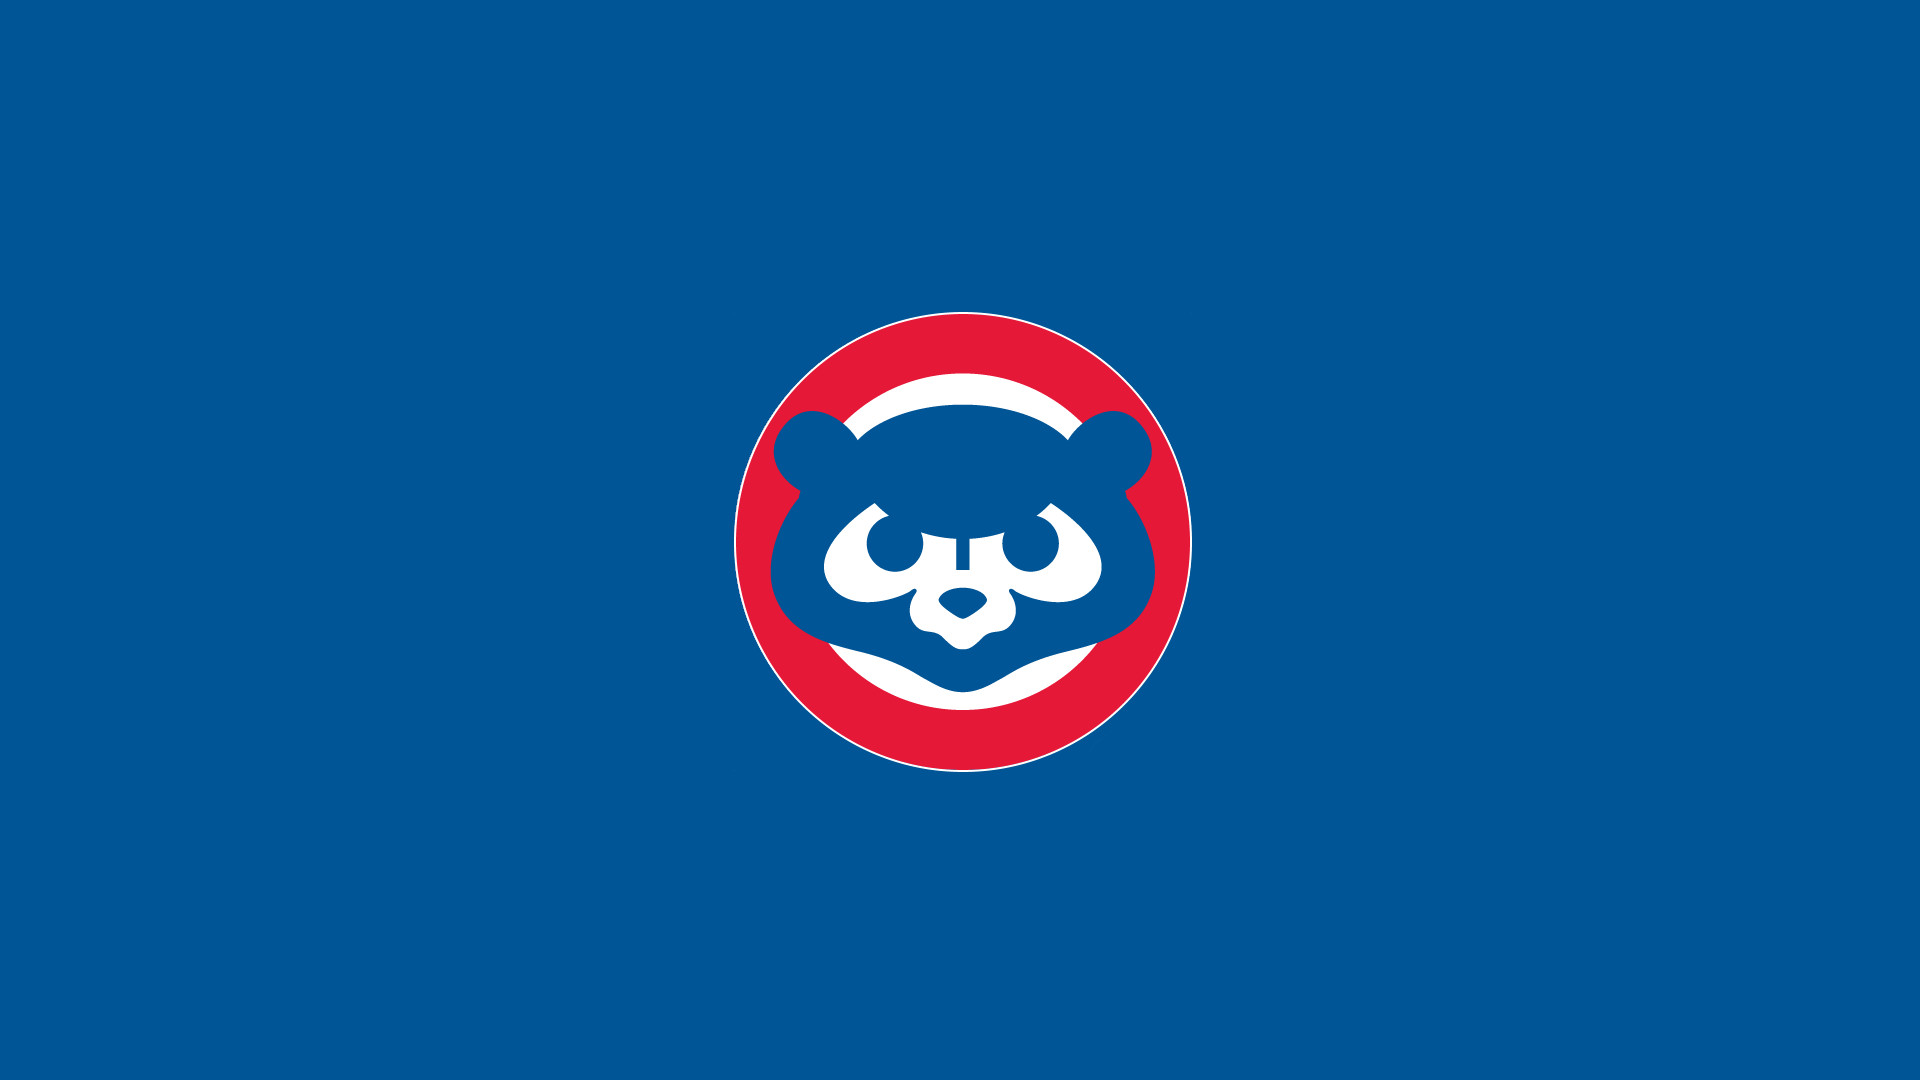 Chicago Cubs wallpapers | Chicago Cubs background – Page 3 | Cub .